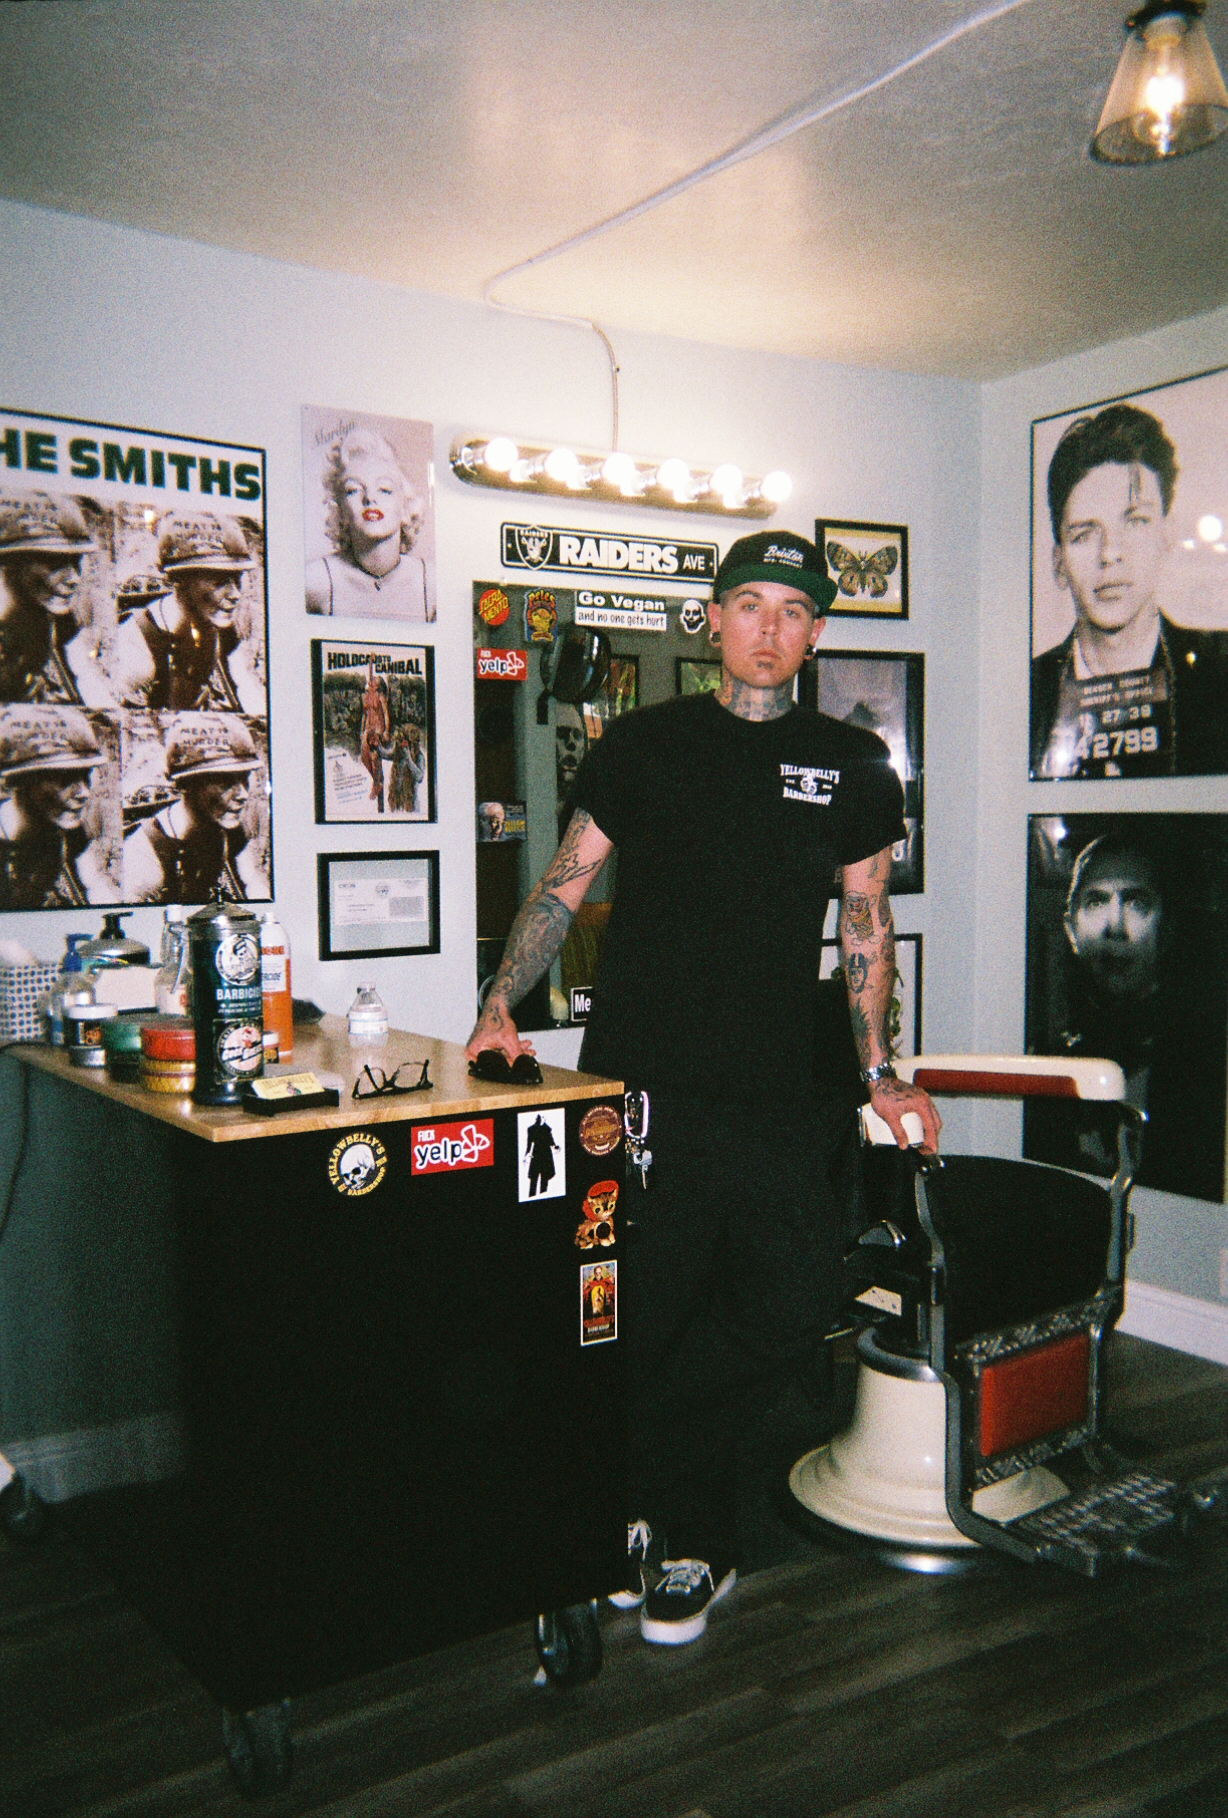 Yellowbelly's Barber Shop - Richie Telford @yellowbellysbarbershop